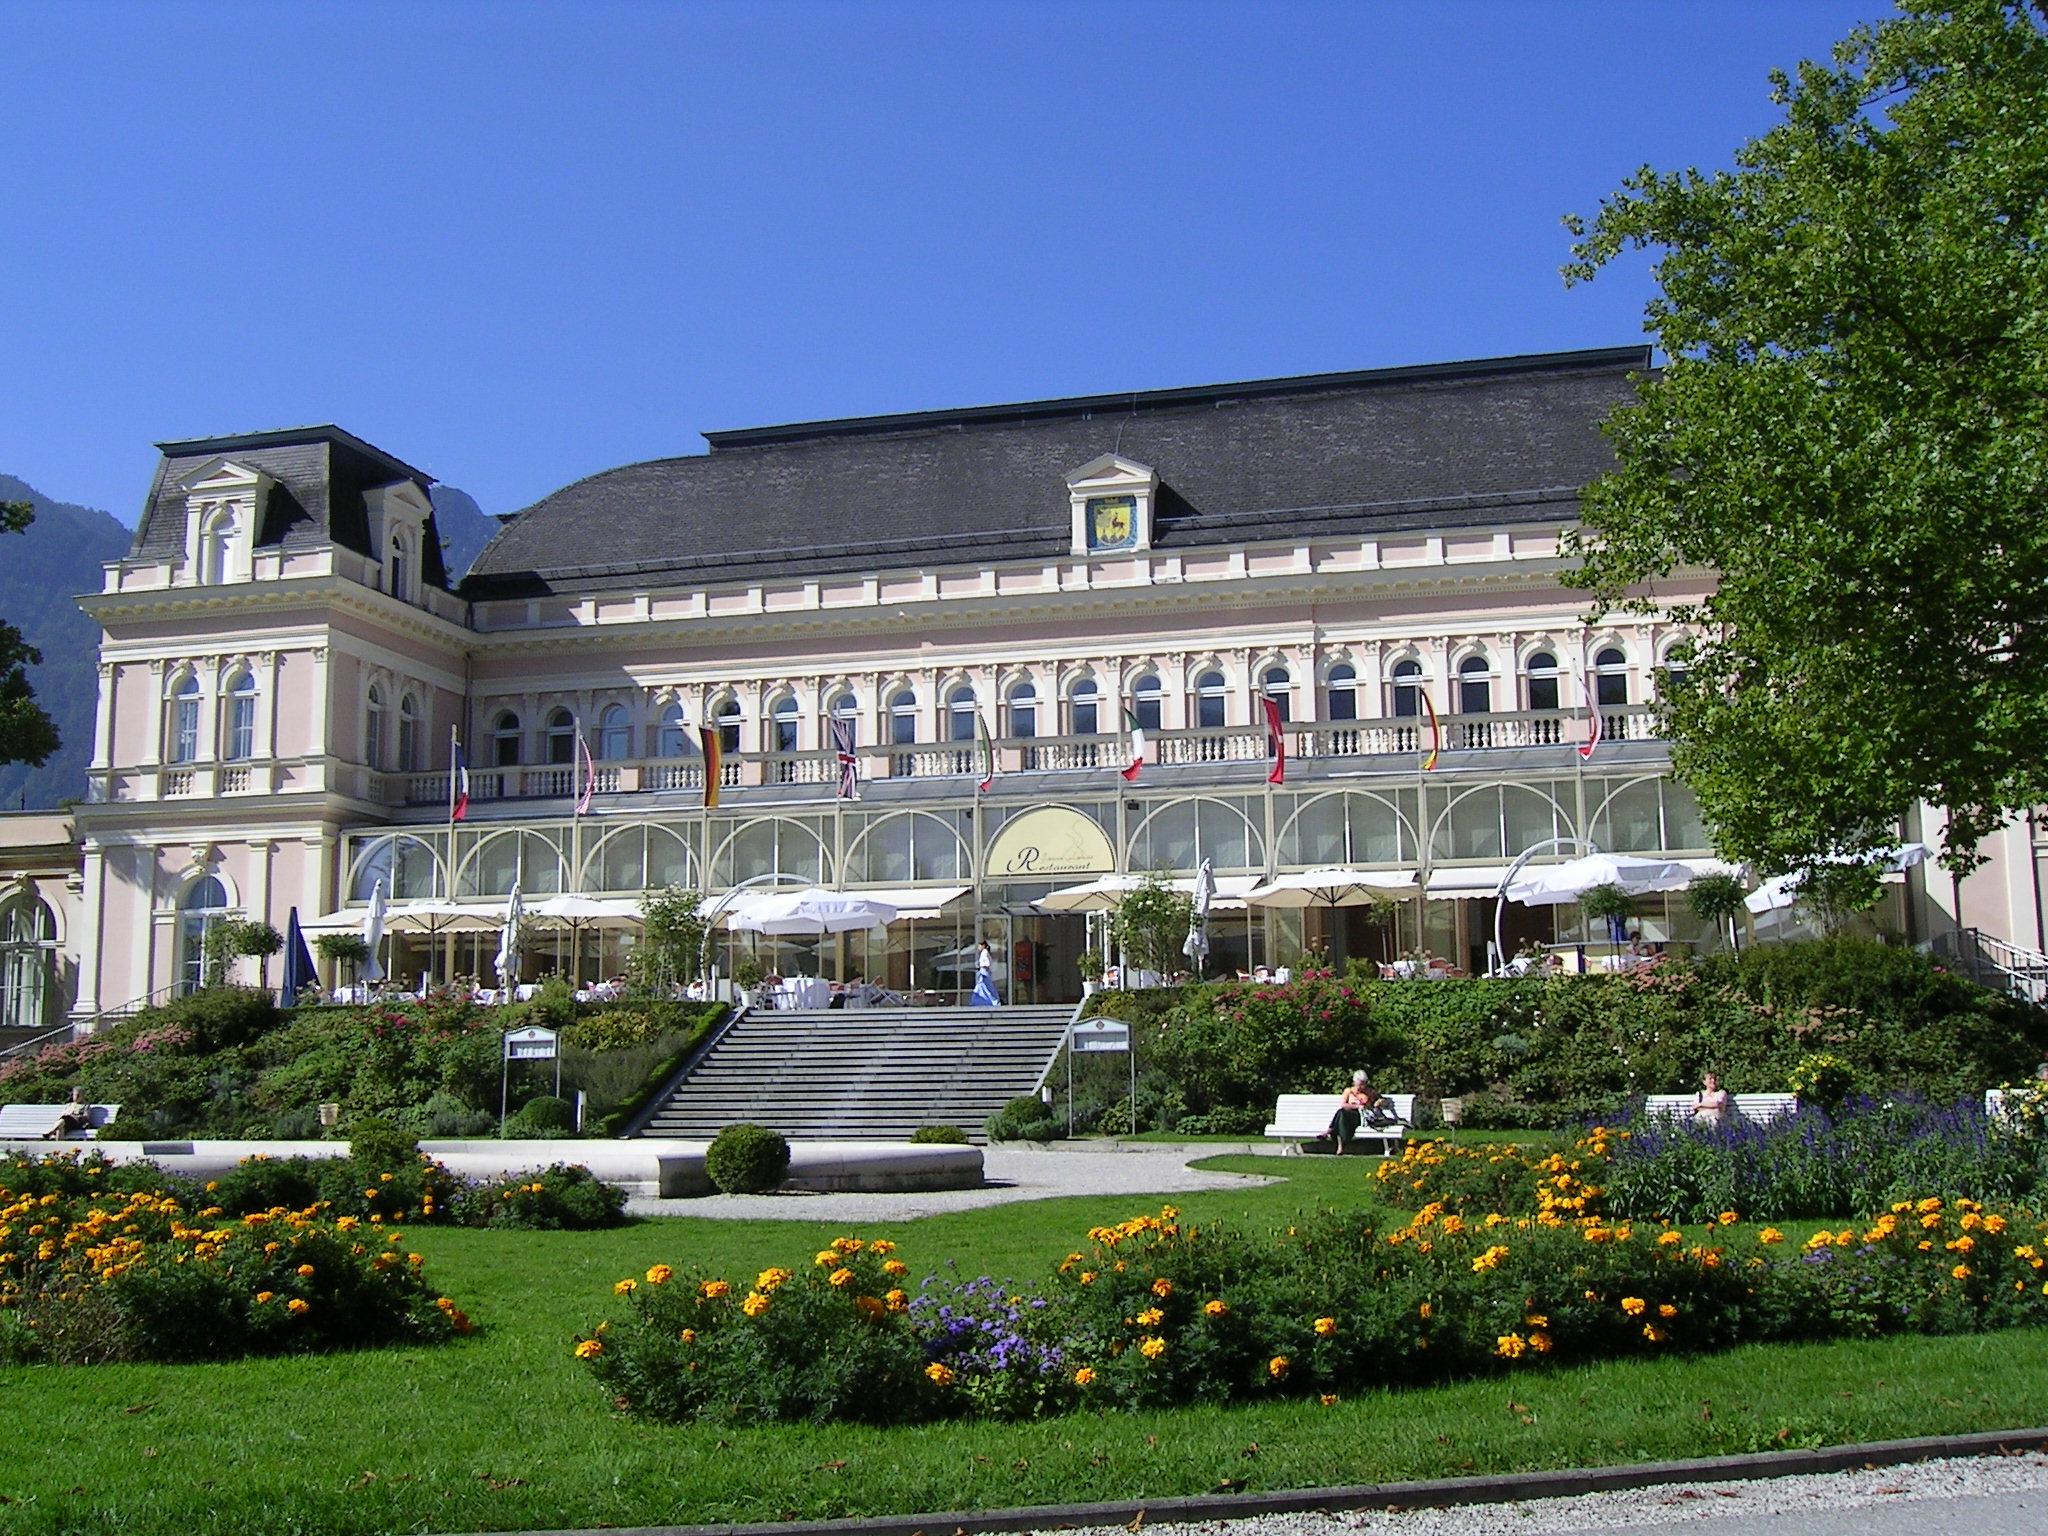 Bad Ischl Austria  City pictures : Kurhaus Bad Ischl Wikimedia Commons